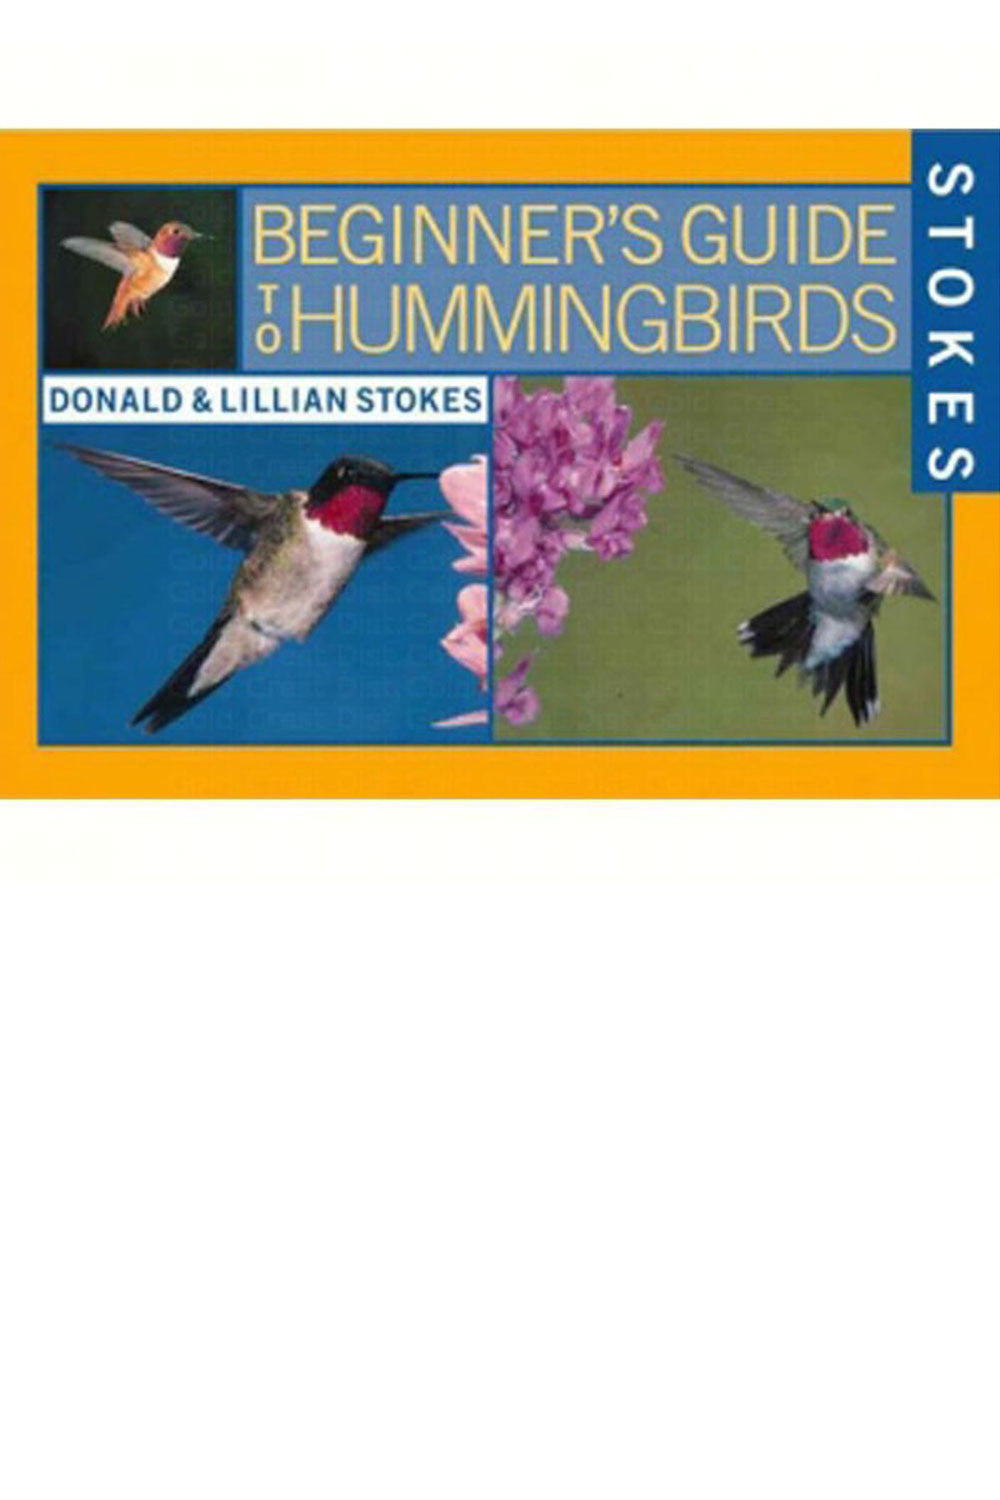 Hummingbird Book - We Love Hummingbirds